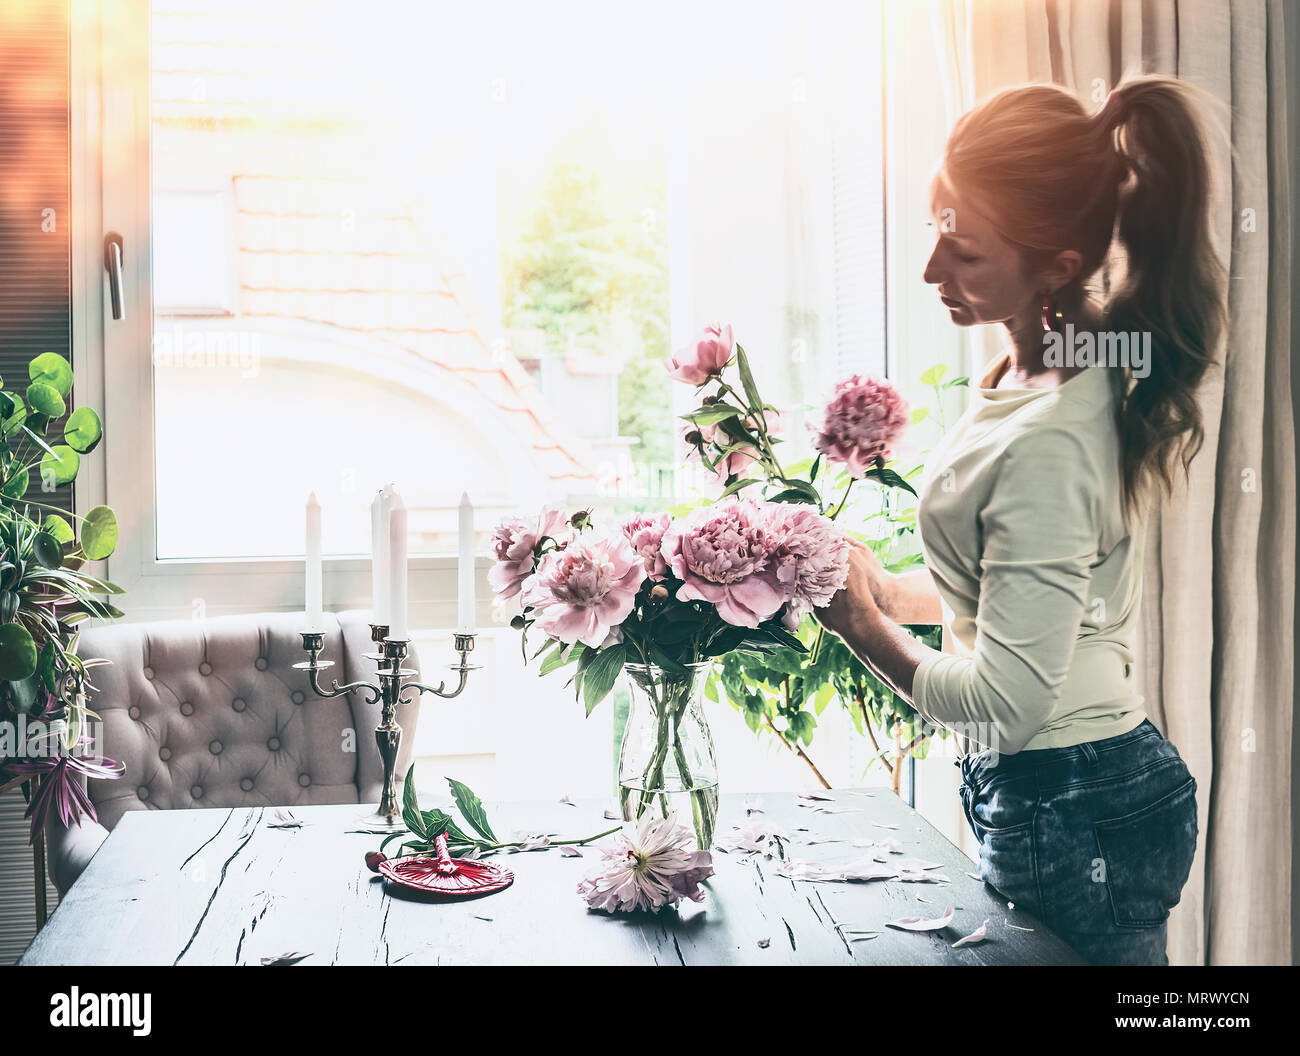 Beautiful modern women with pony tail hair arranging peonies bunch in glass  vase on table at window in living room. Lifestyle. Happy home 226095639d